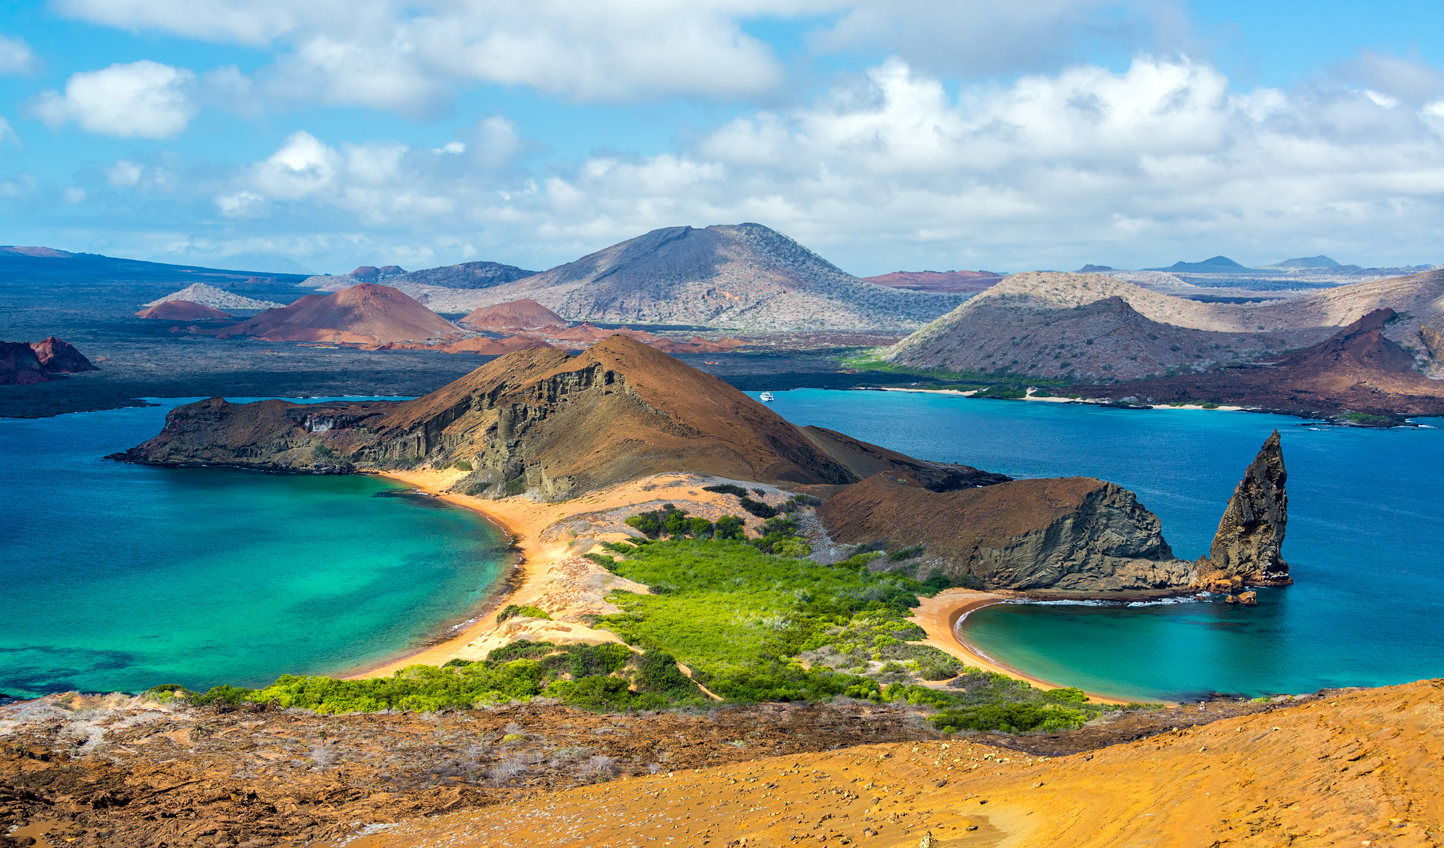 Bask on the sweeping sands of Bartolome Island